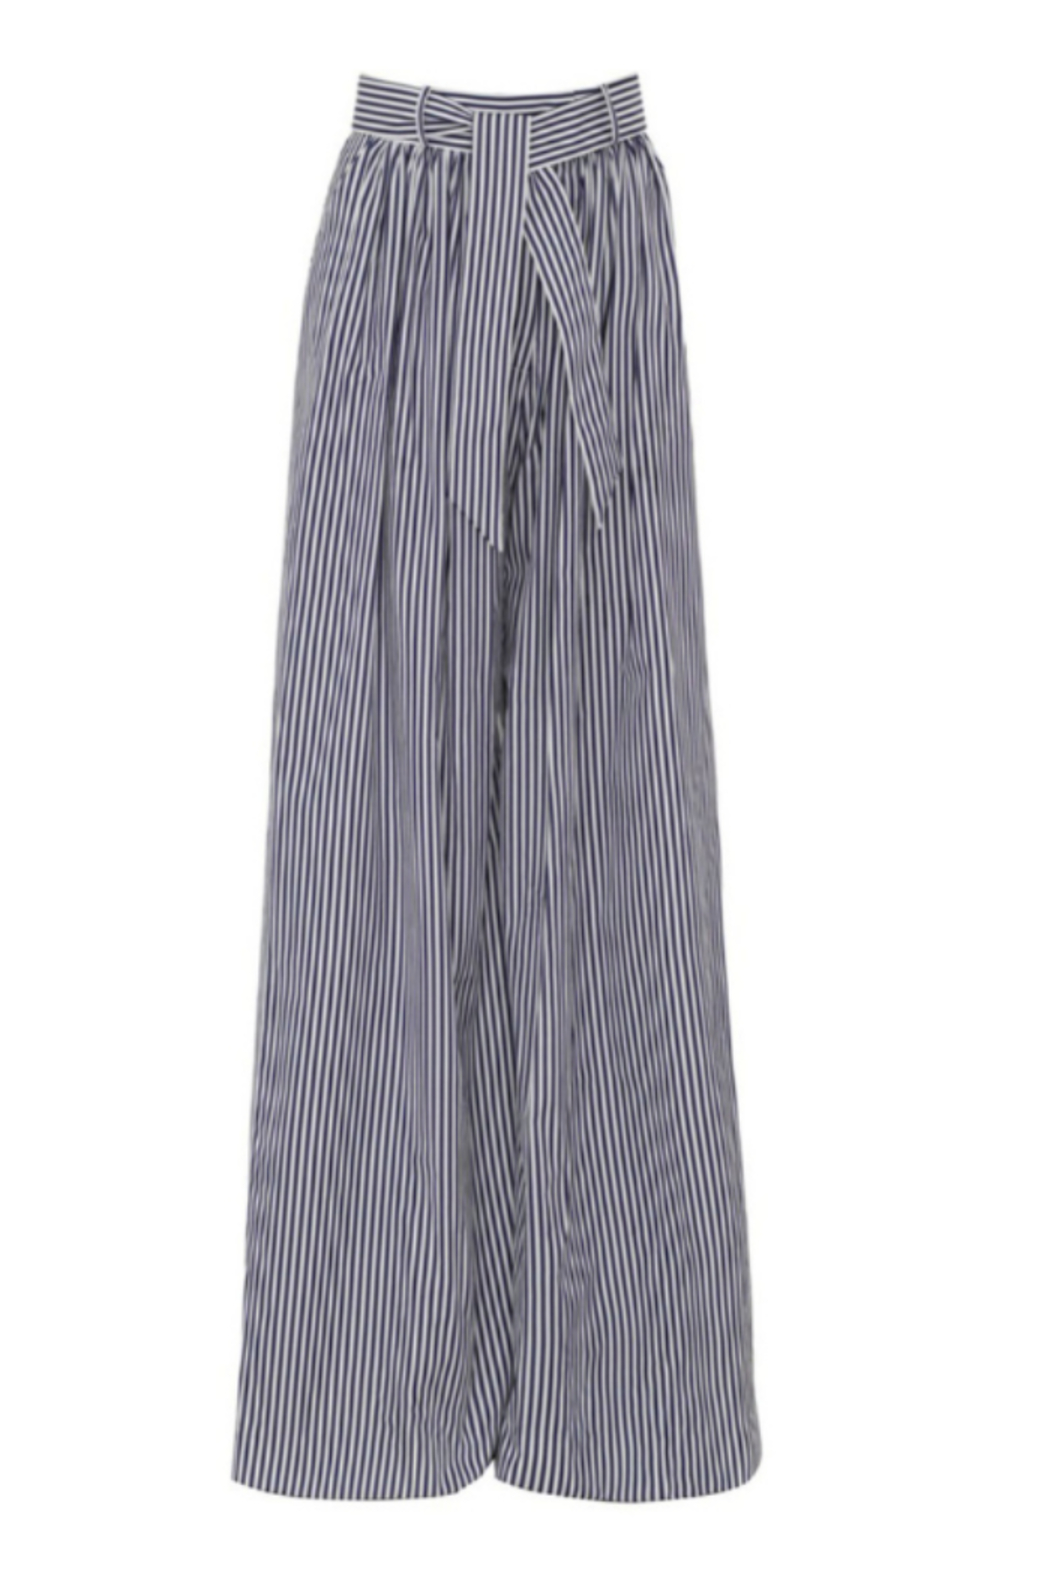 Martin Grant GATHERED WAIST STRIPED WIDE LEG PANT - Main Image